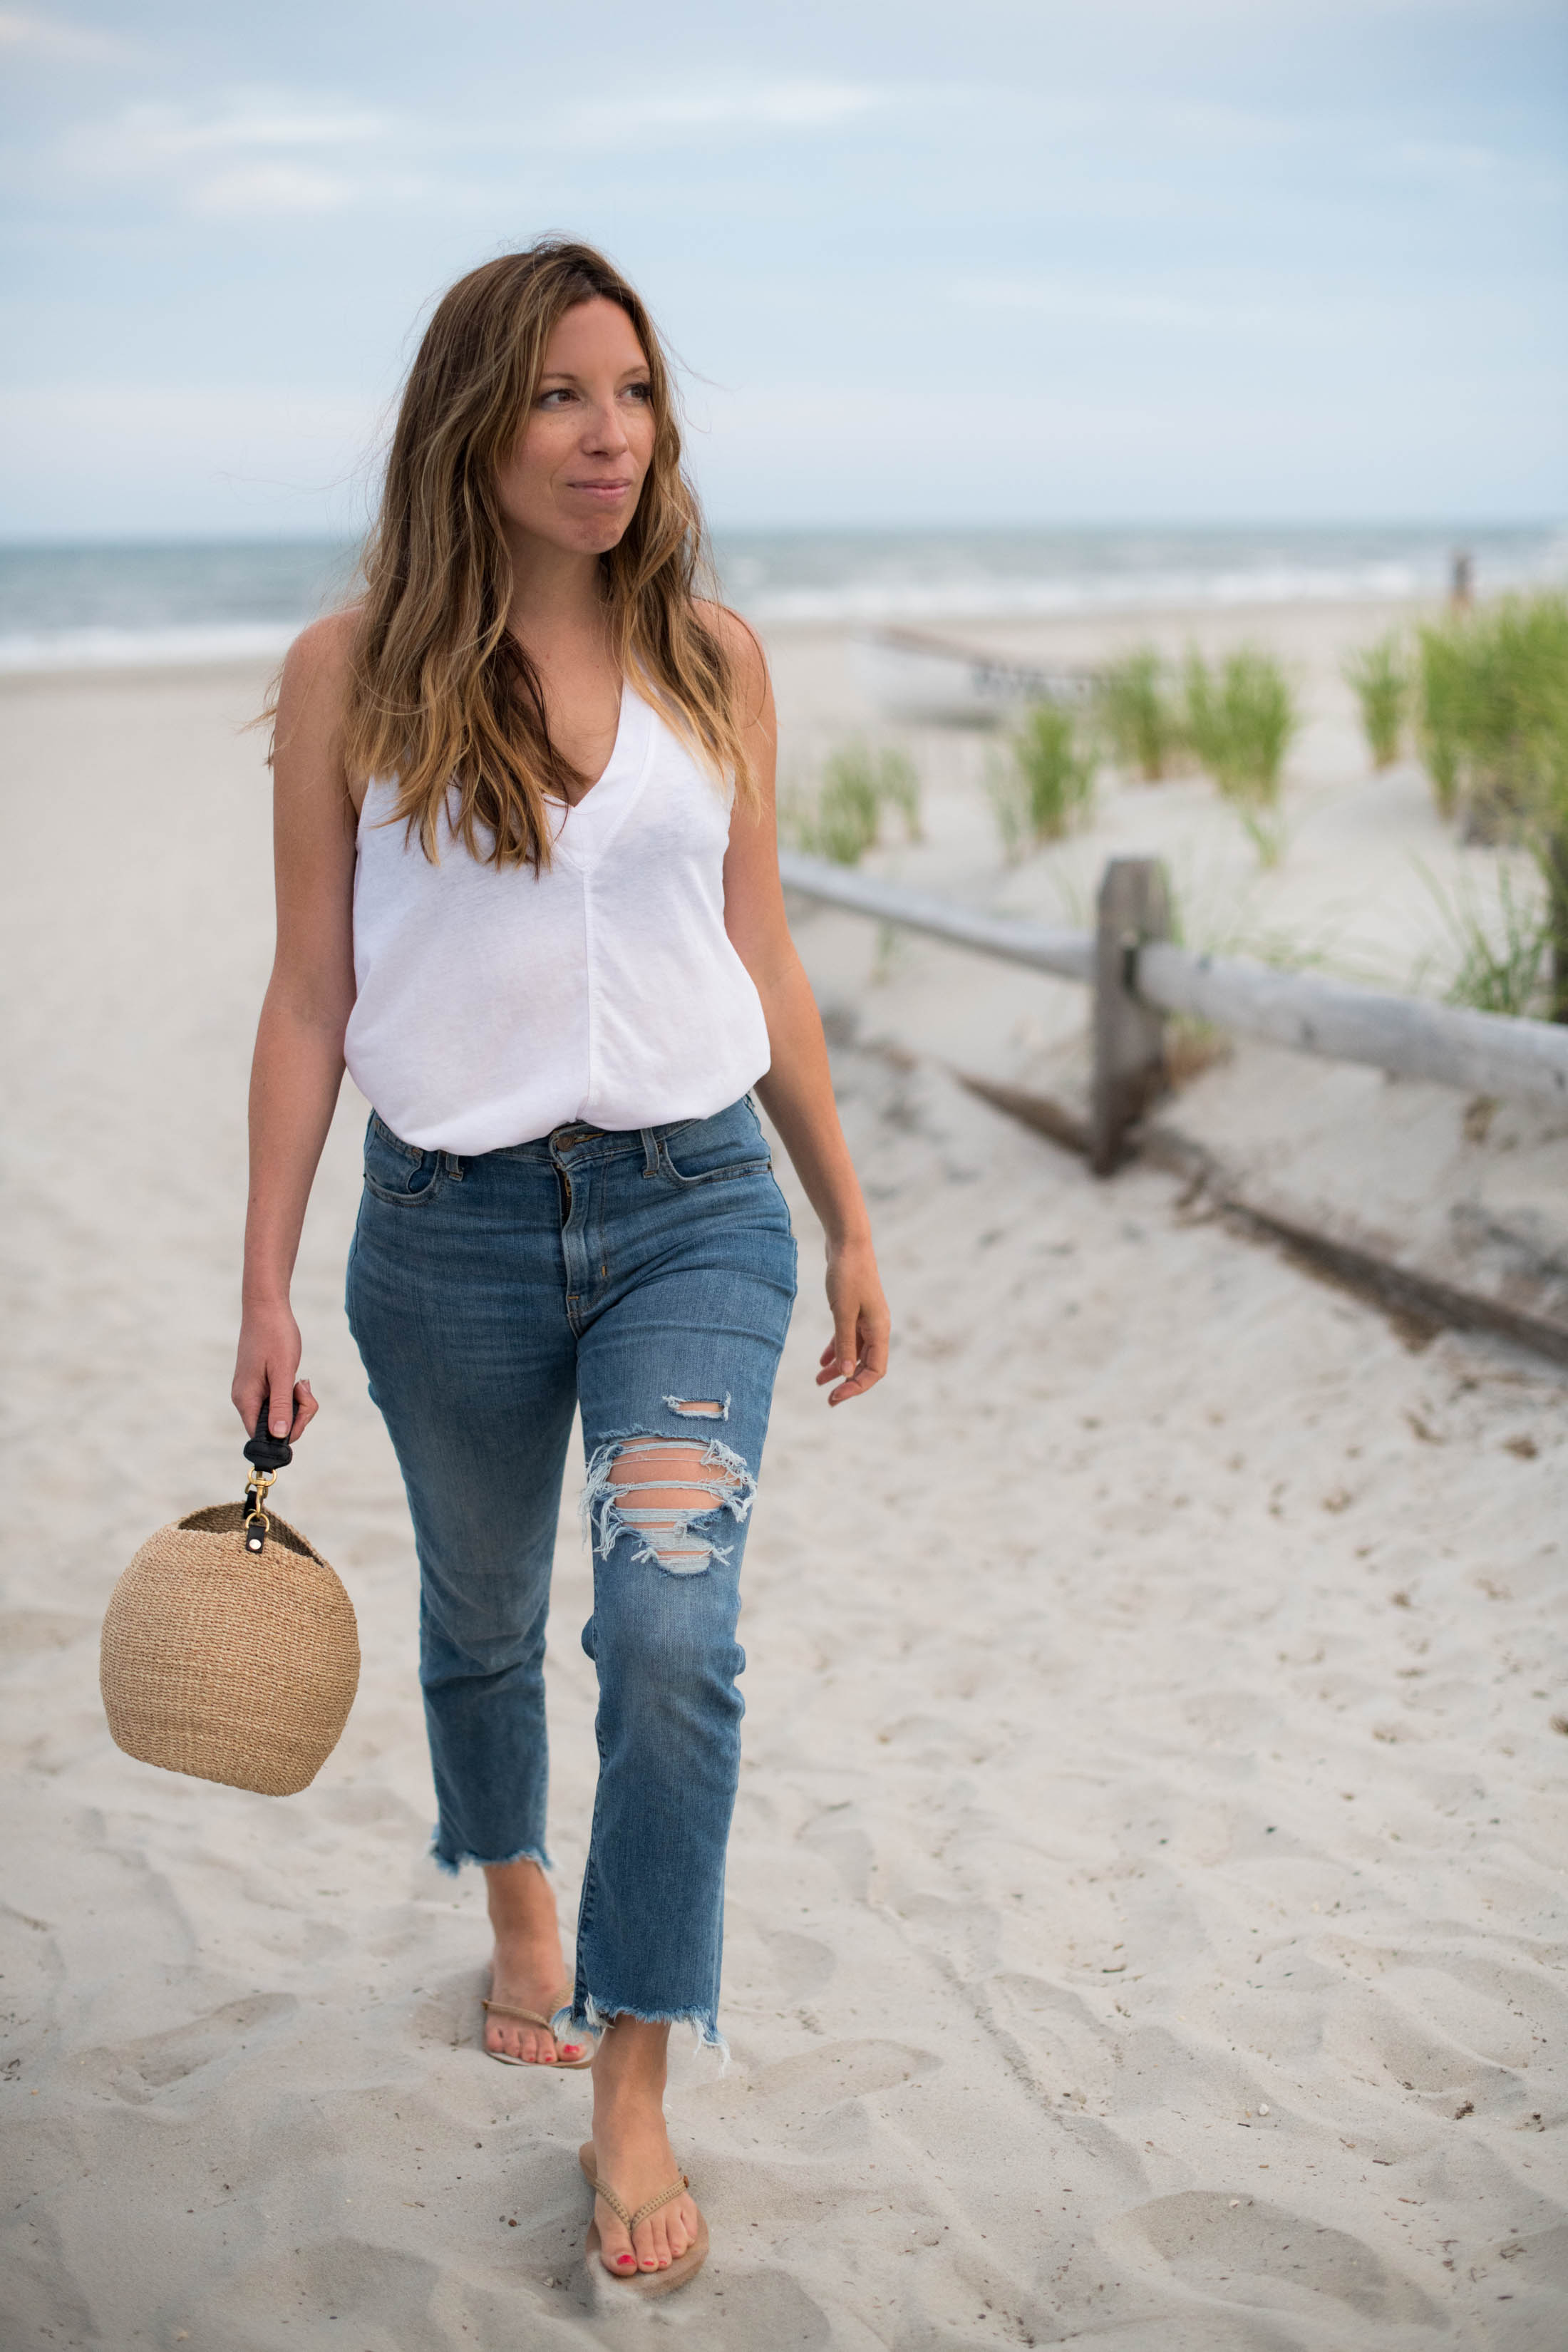 Found 'em: the mom jeans of the summer. We're obsessed with these Levi's high-rise, straight leg cropped jeans...soft, great rear view...YES.